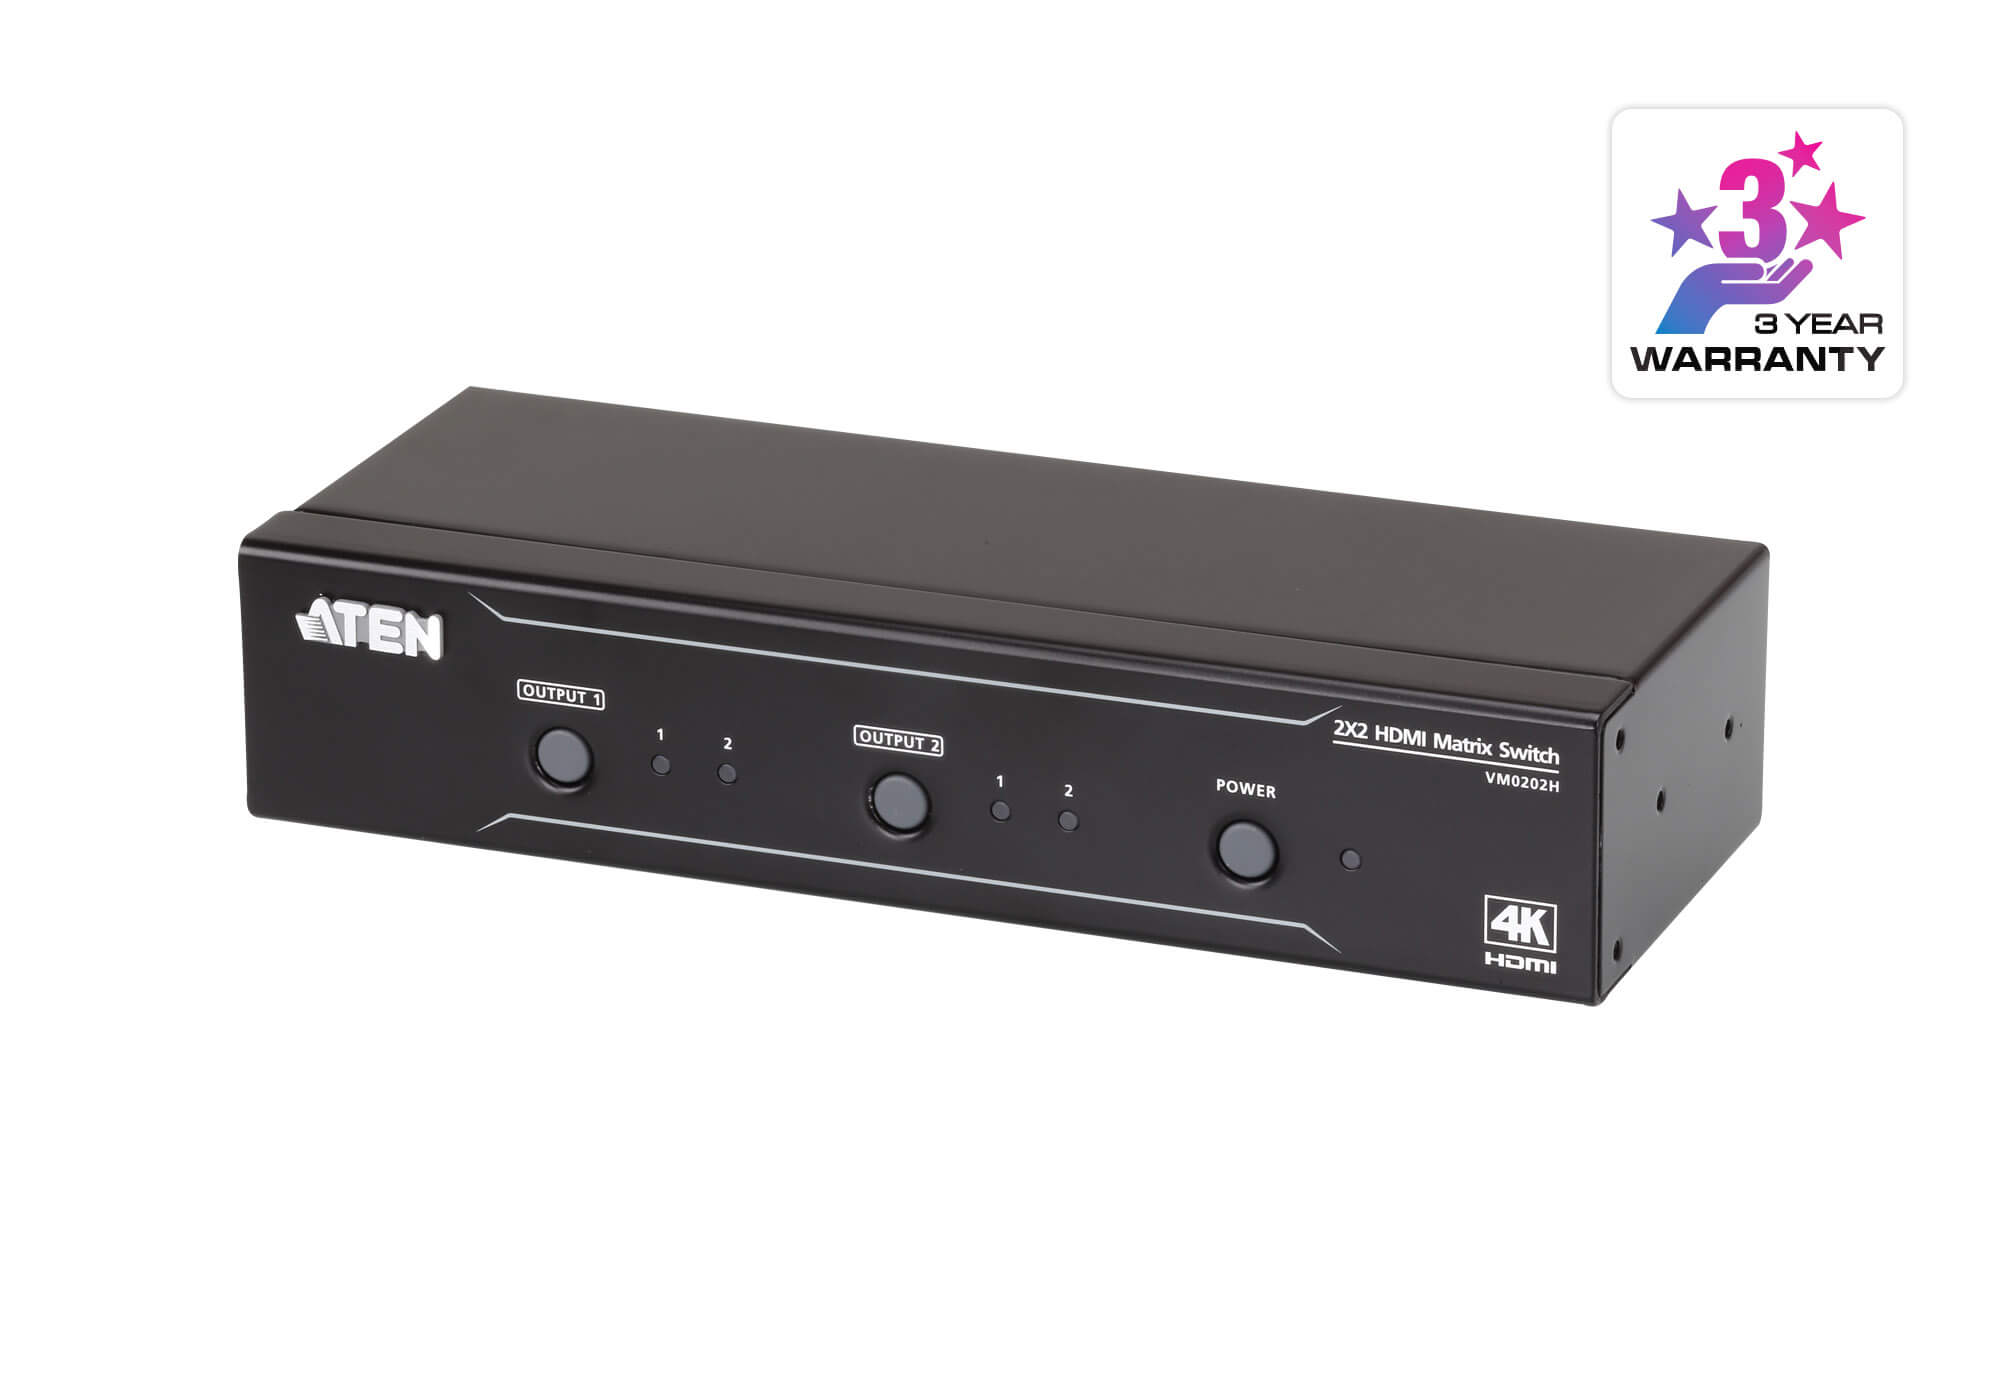 2x2 4K HDMI Matrix Switch-1